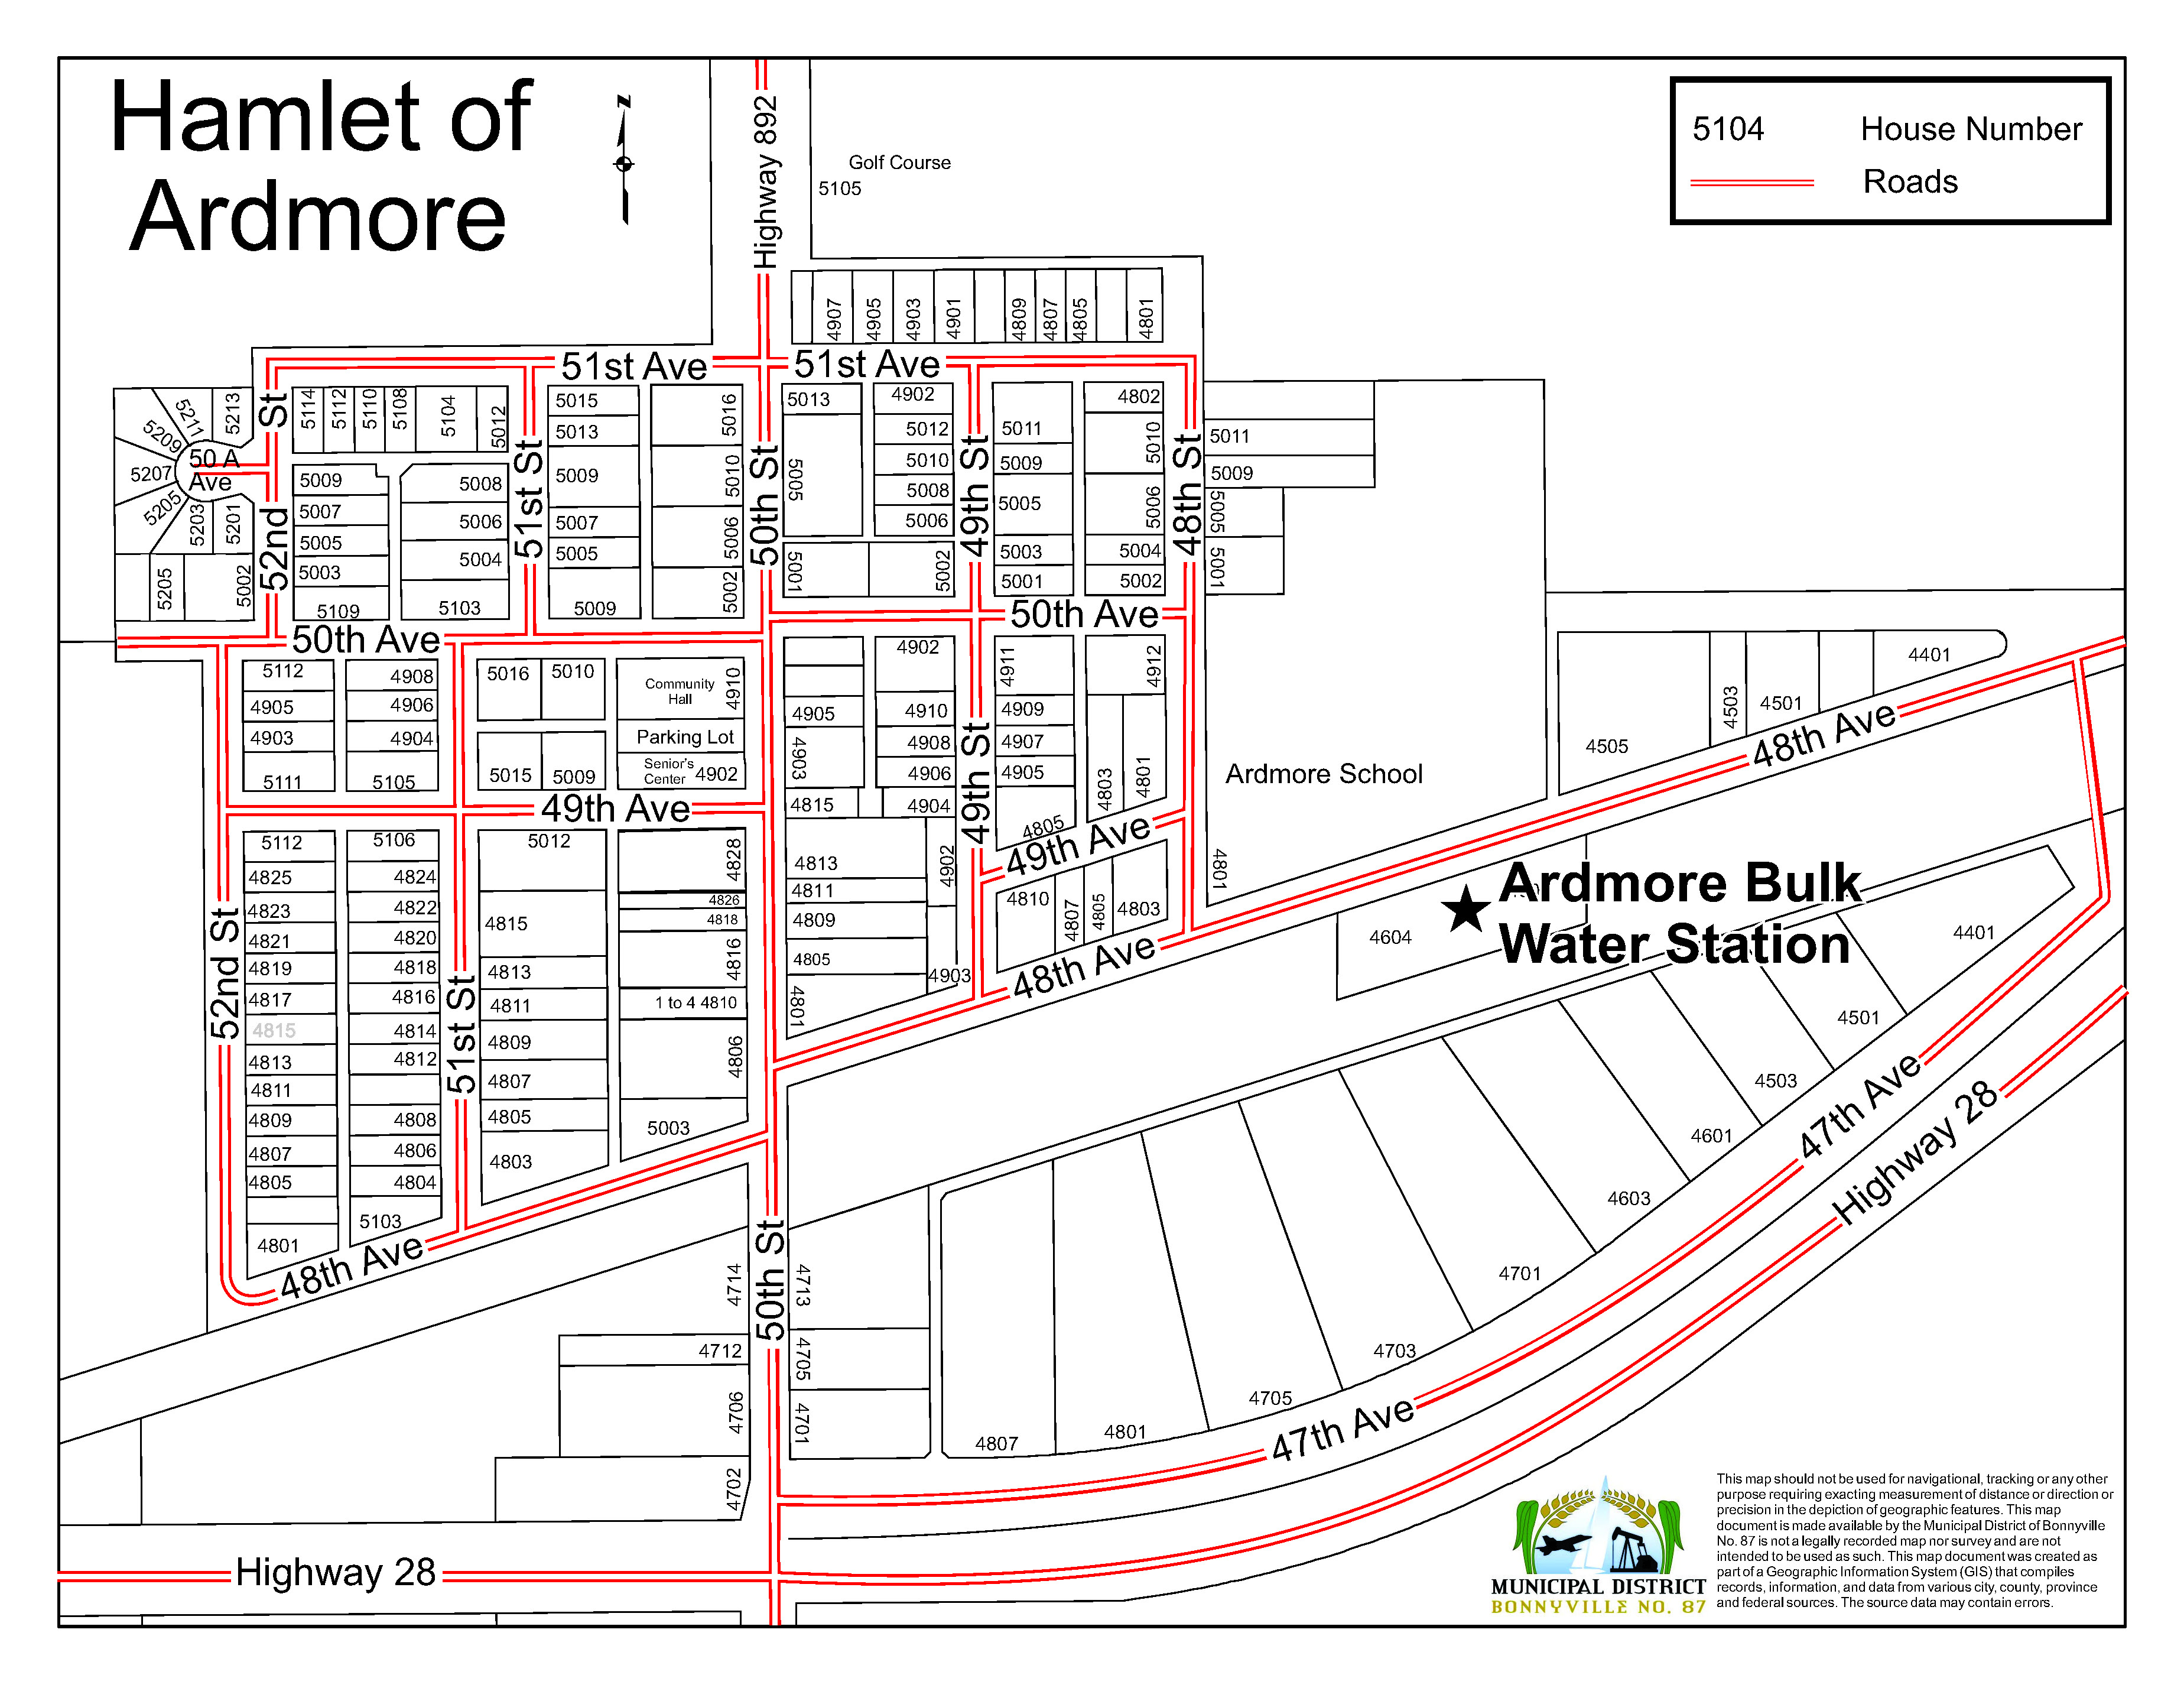 Sandbags Map 2020 - Ardmore